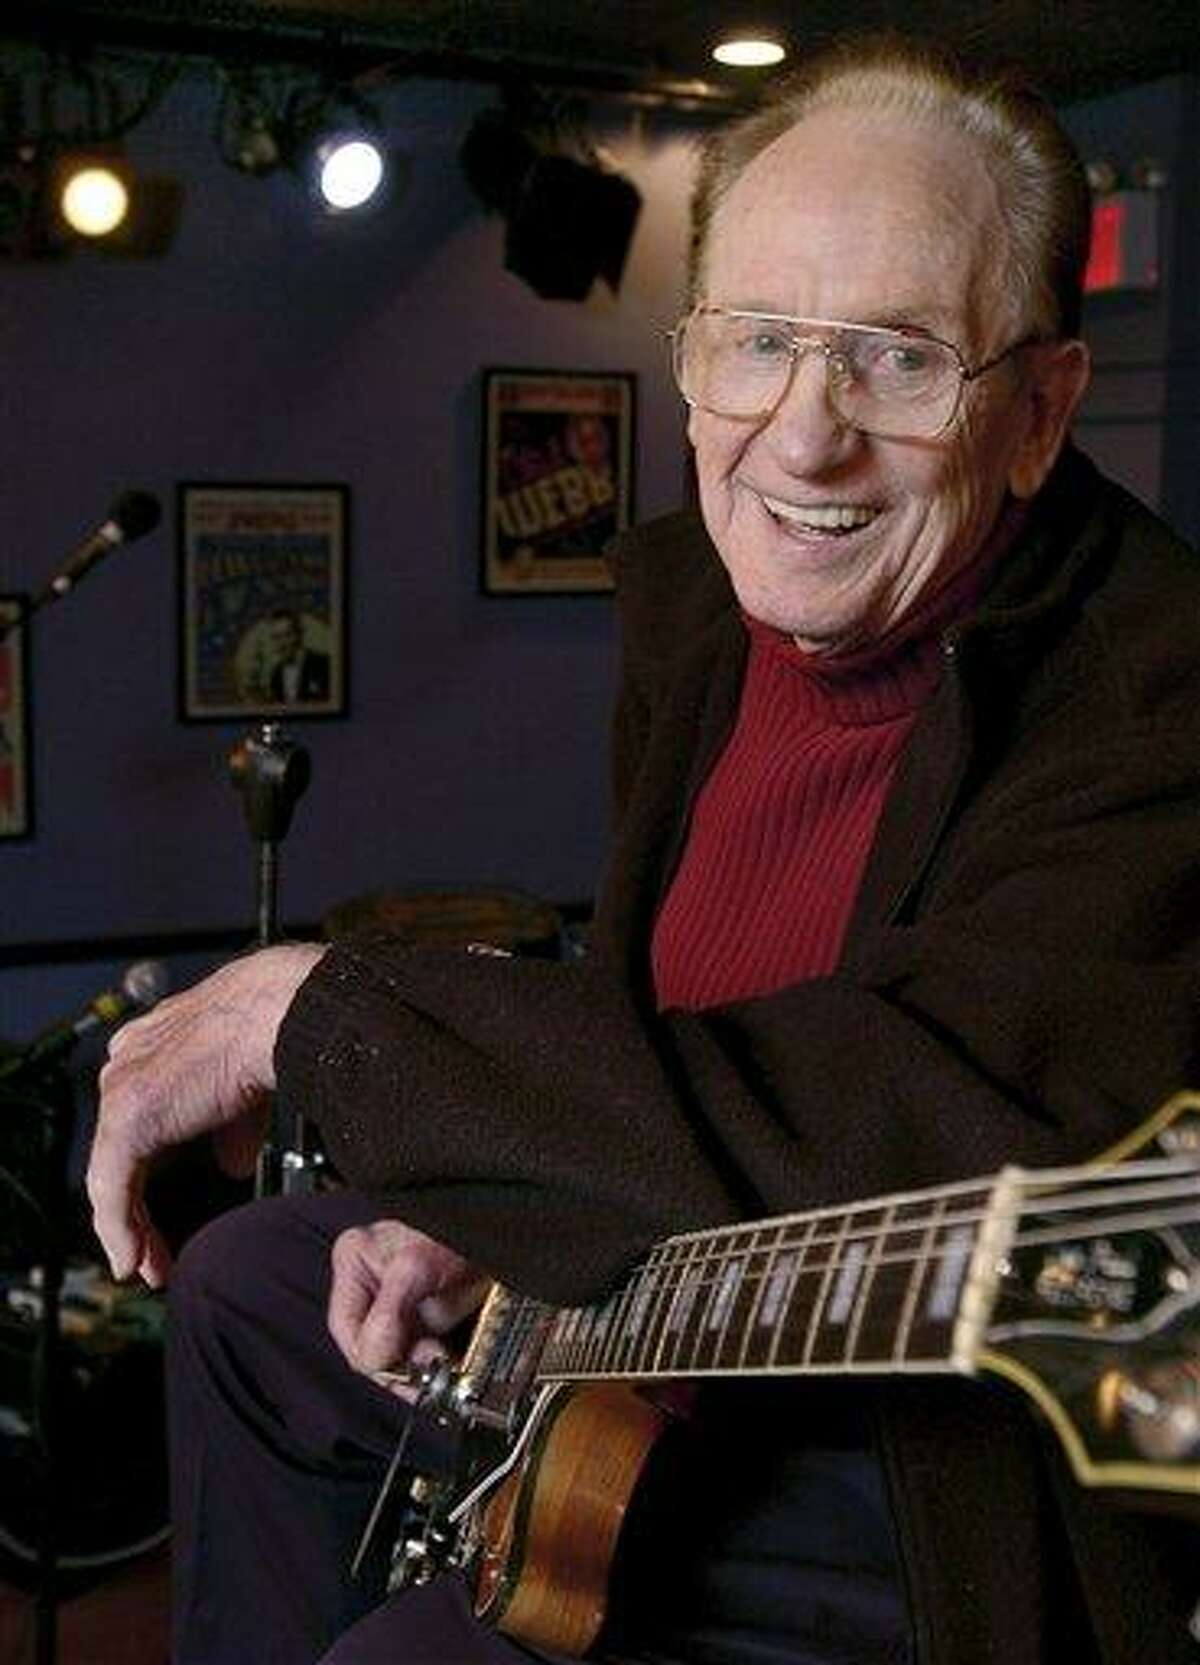 FILE - In this Oct. 4, 2004 file photo, guitar legend Les Paul gets ready to rehearse at the Iridium Jazz Club in New York. Paul, 94, the guitarist and inventor who changed the course of music with the electric guitar and multitrack recording and had a string of hits, died, Thursday, Aug. 13, 2009 in White Plains, N.Y., according to Gibson Guitar. (AP Photo/Richard Drew, file)